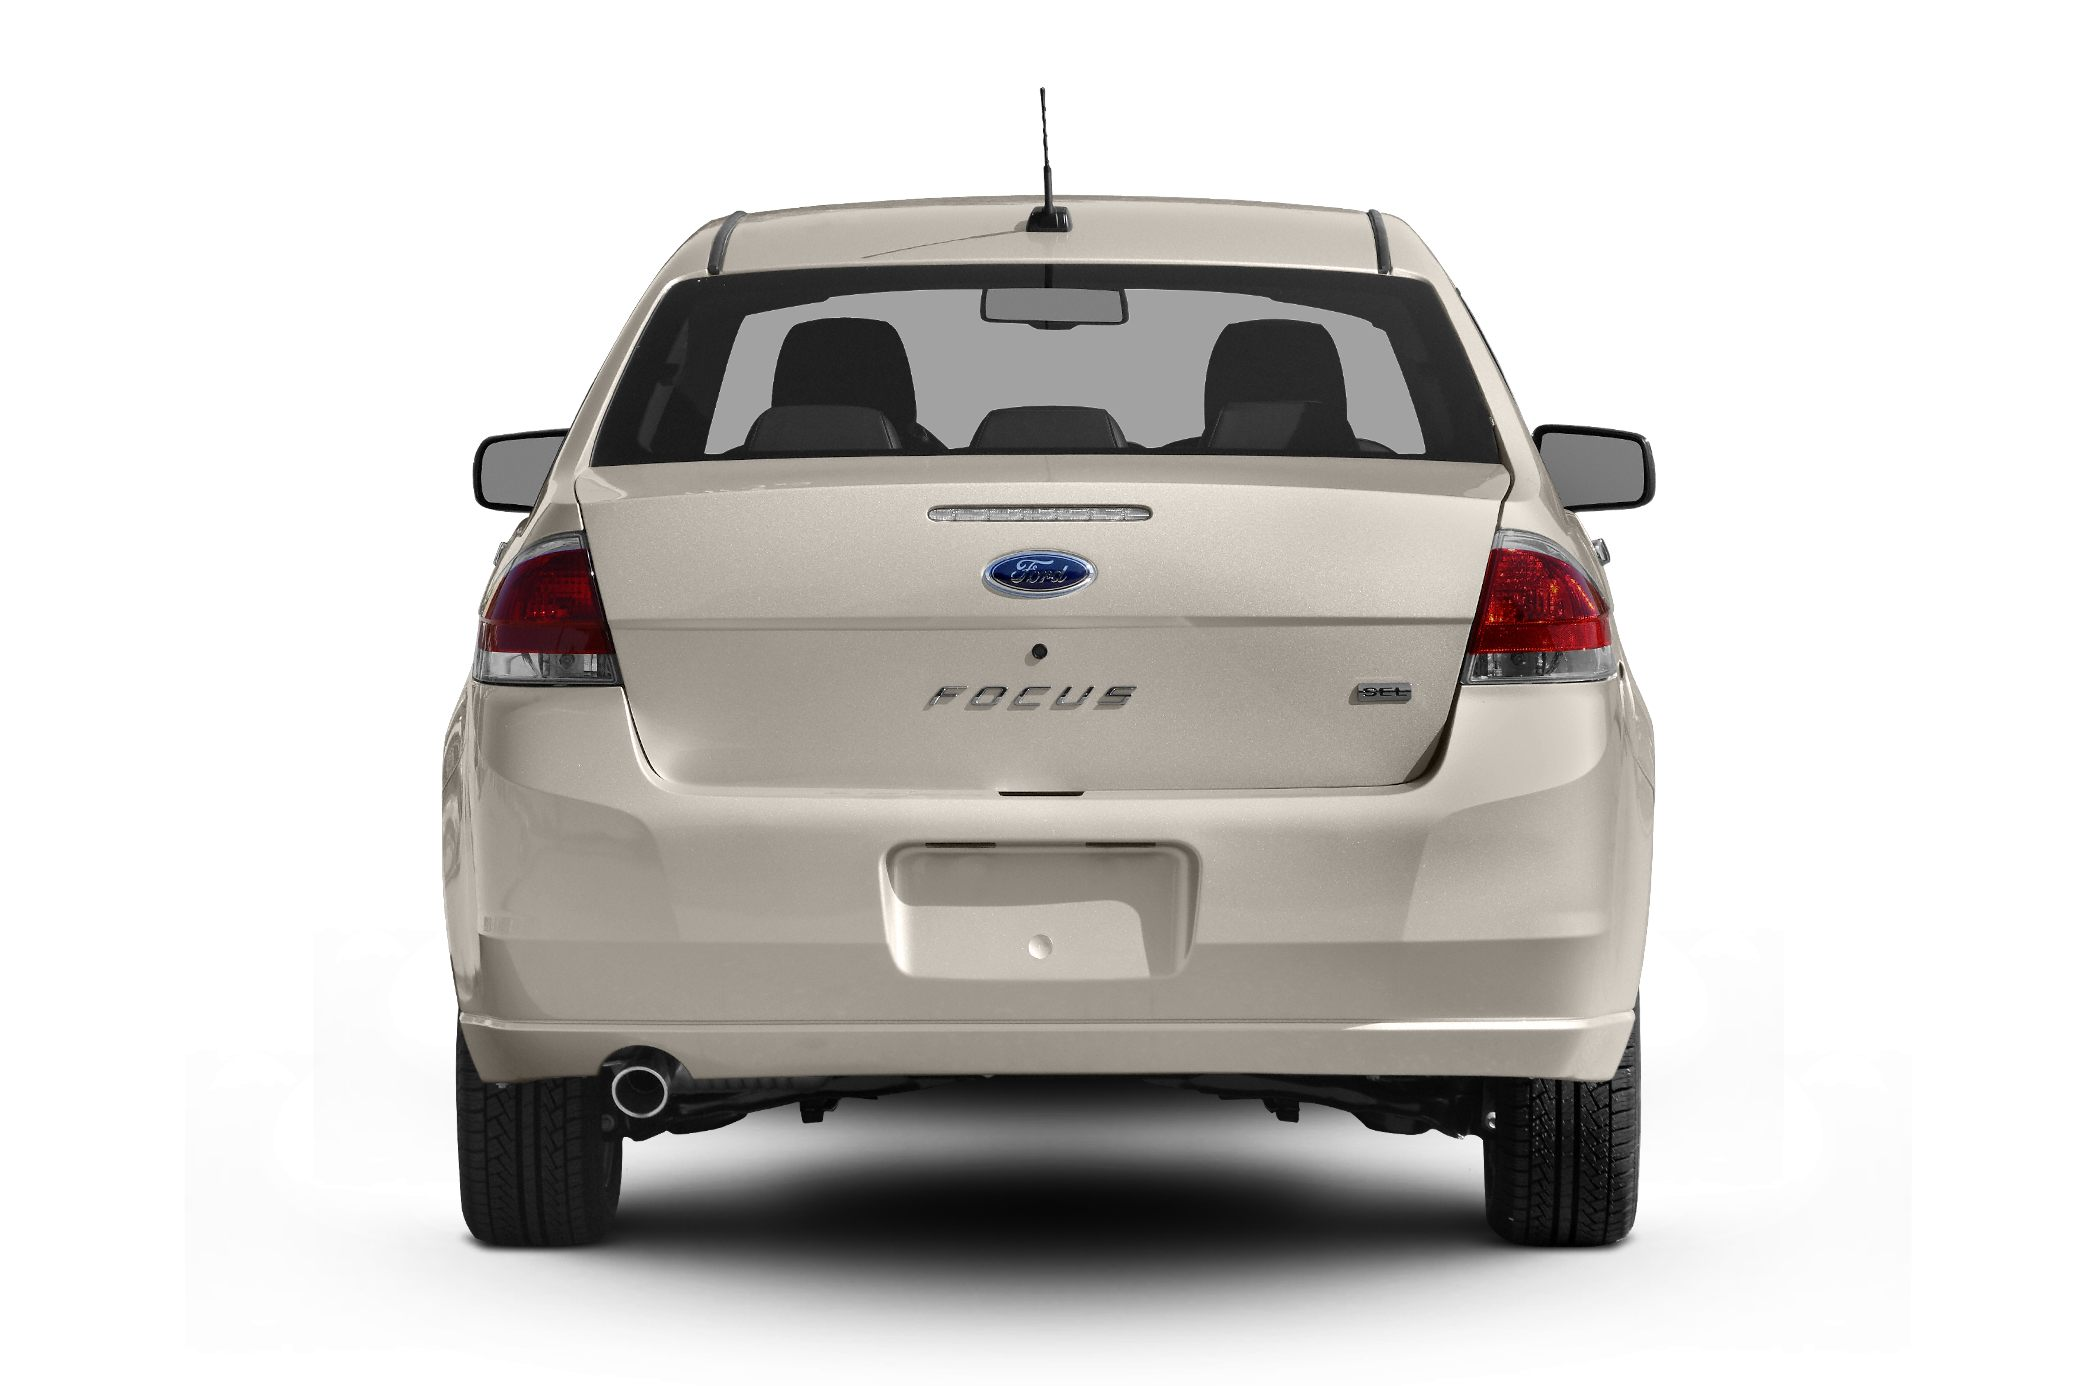 small resolution of used 2010 ford focus for sale in buckner near louisville ky vin 1fahp3fn5aw176811